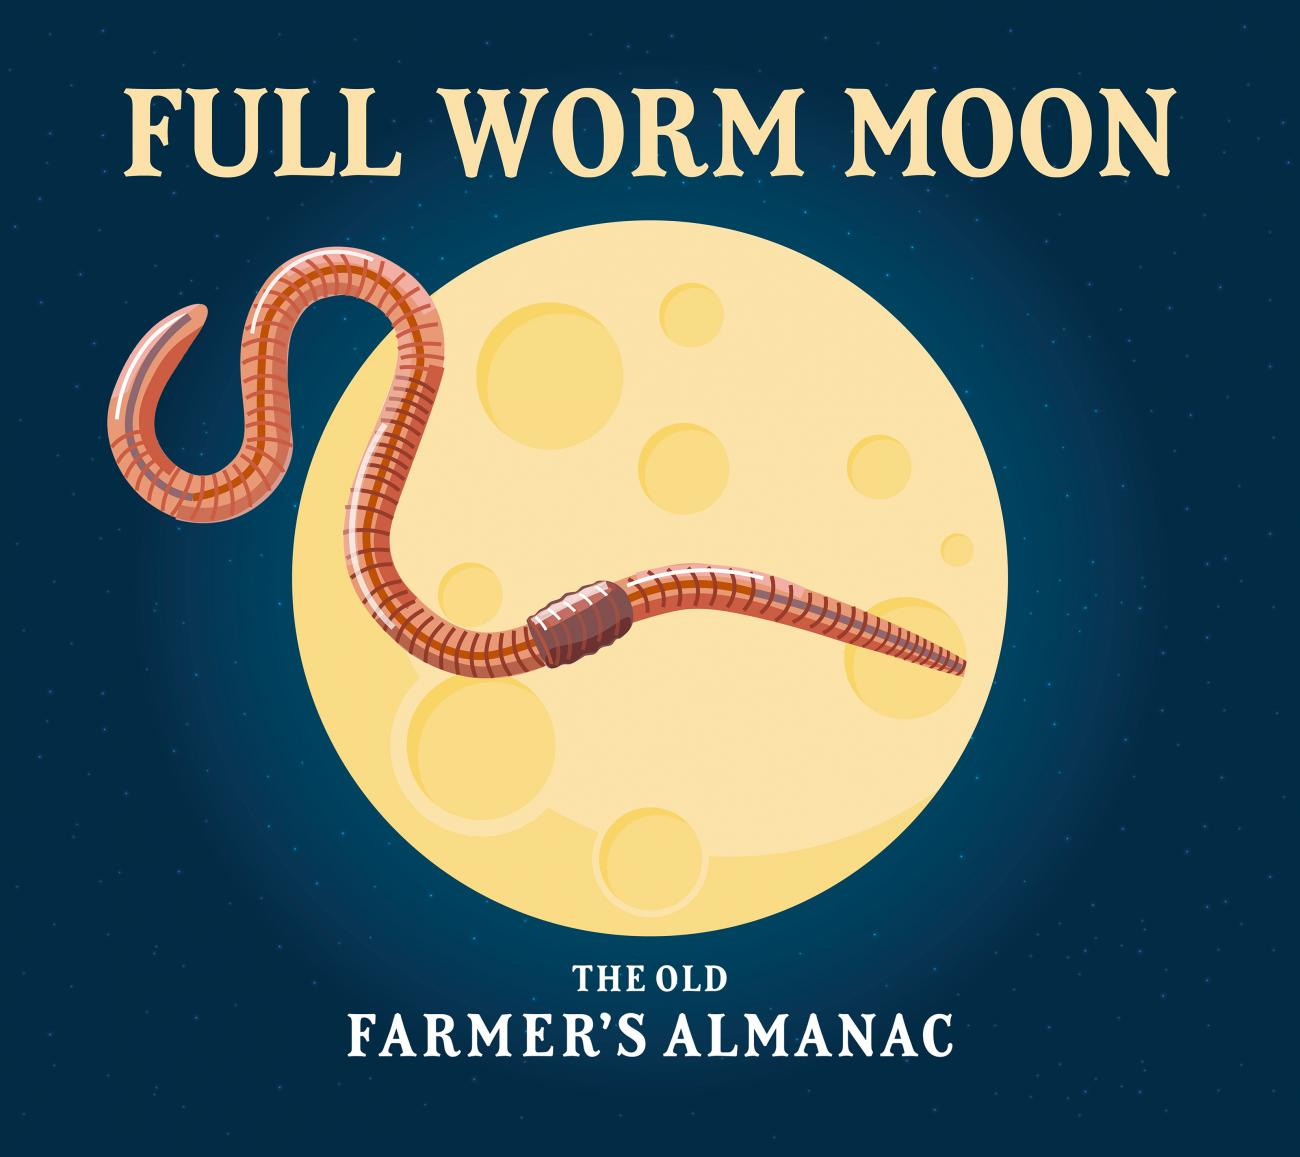 Full Moon for March 2020: The Full Worm Moon | The Old Farmer's Almanac